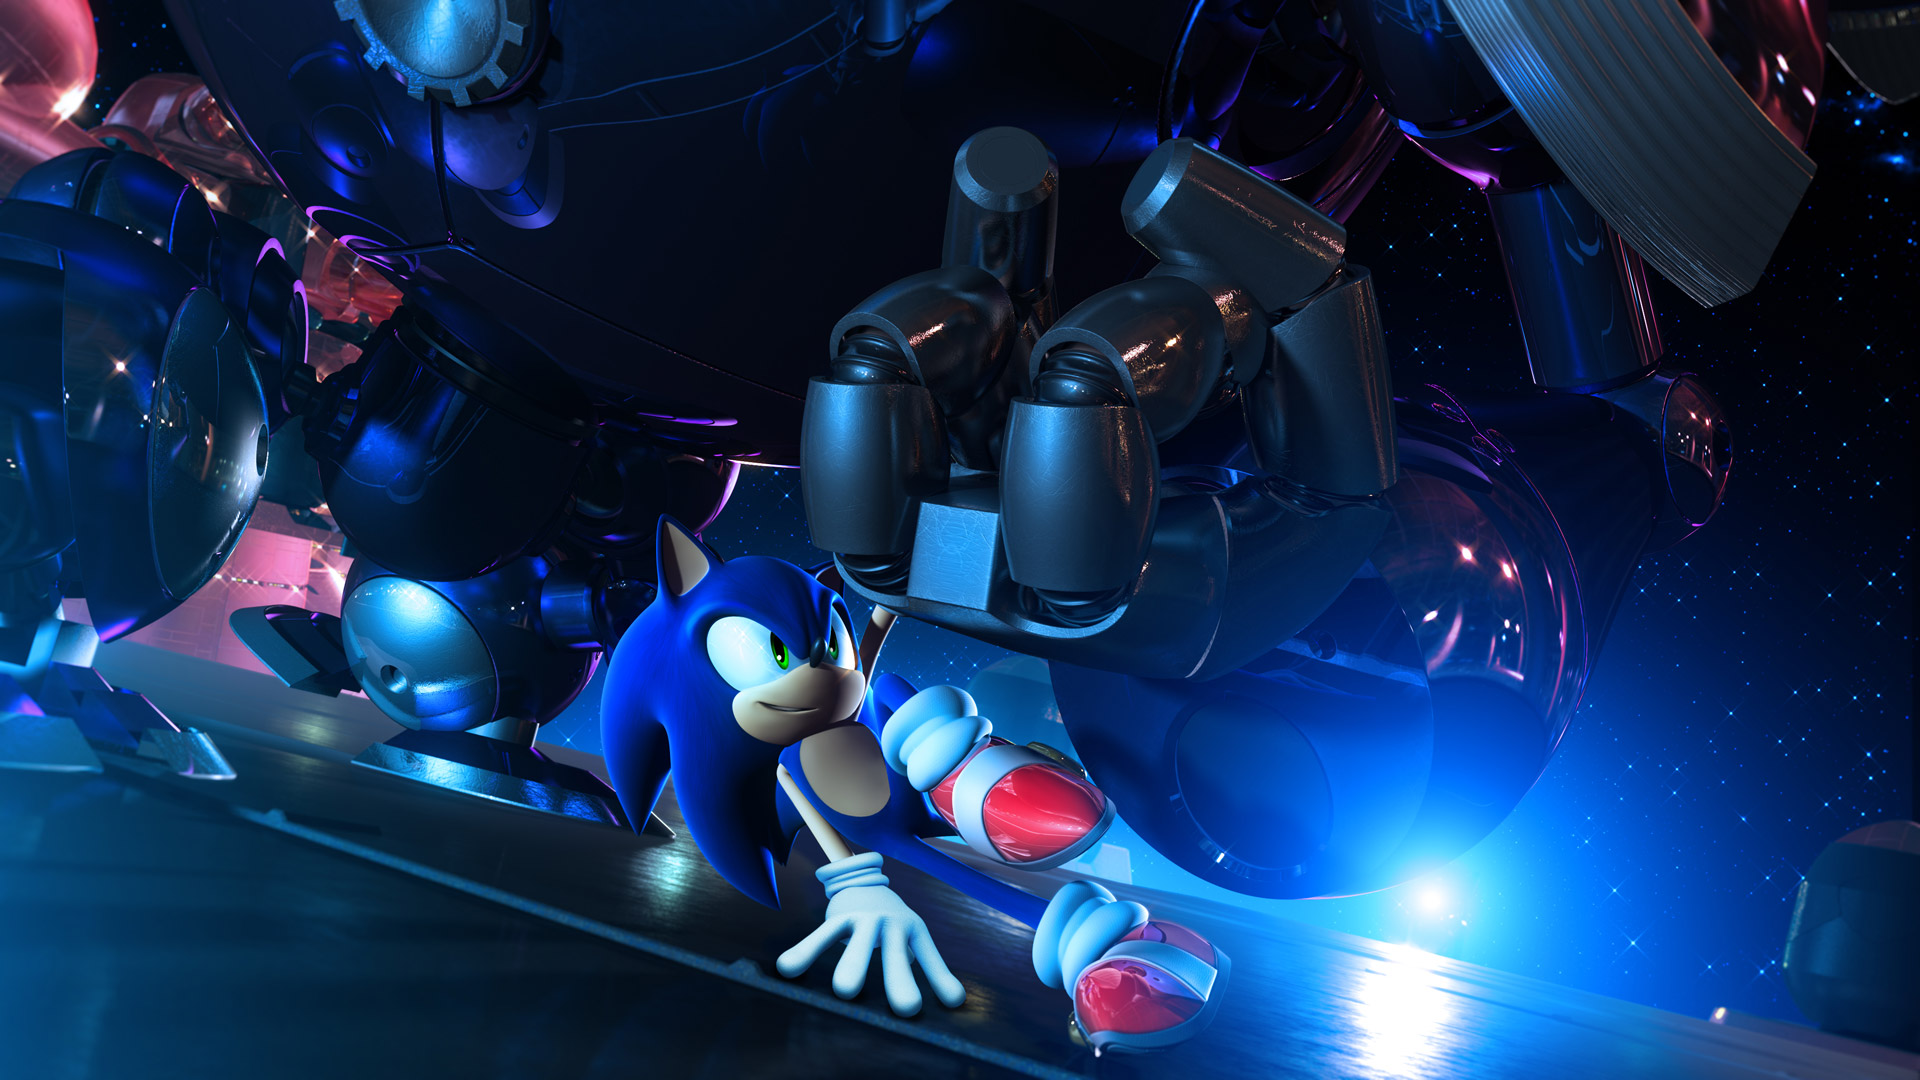 Sonic Unleashed Wallpaper in 1920x1080